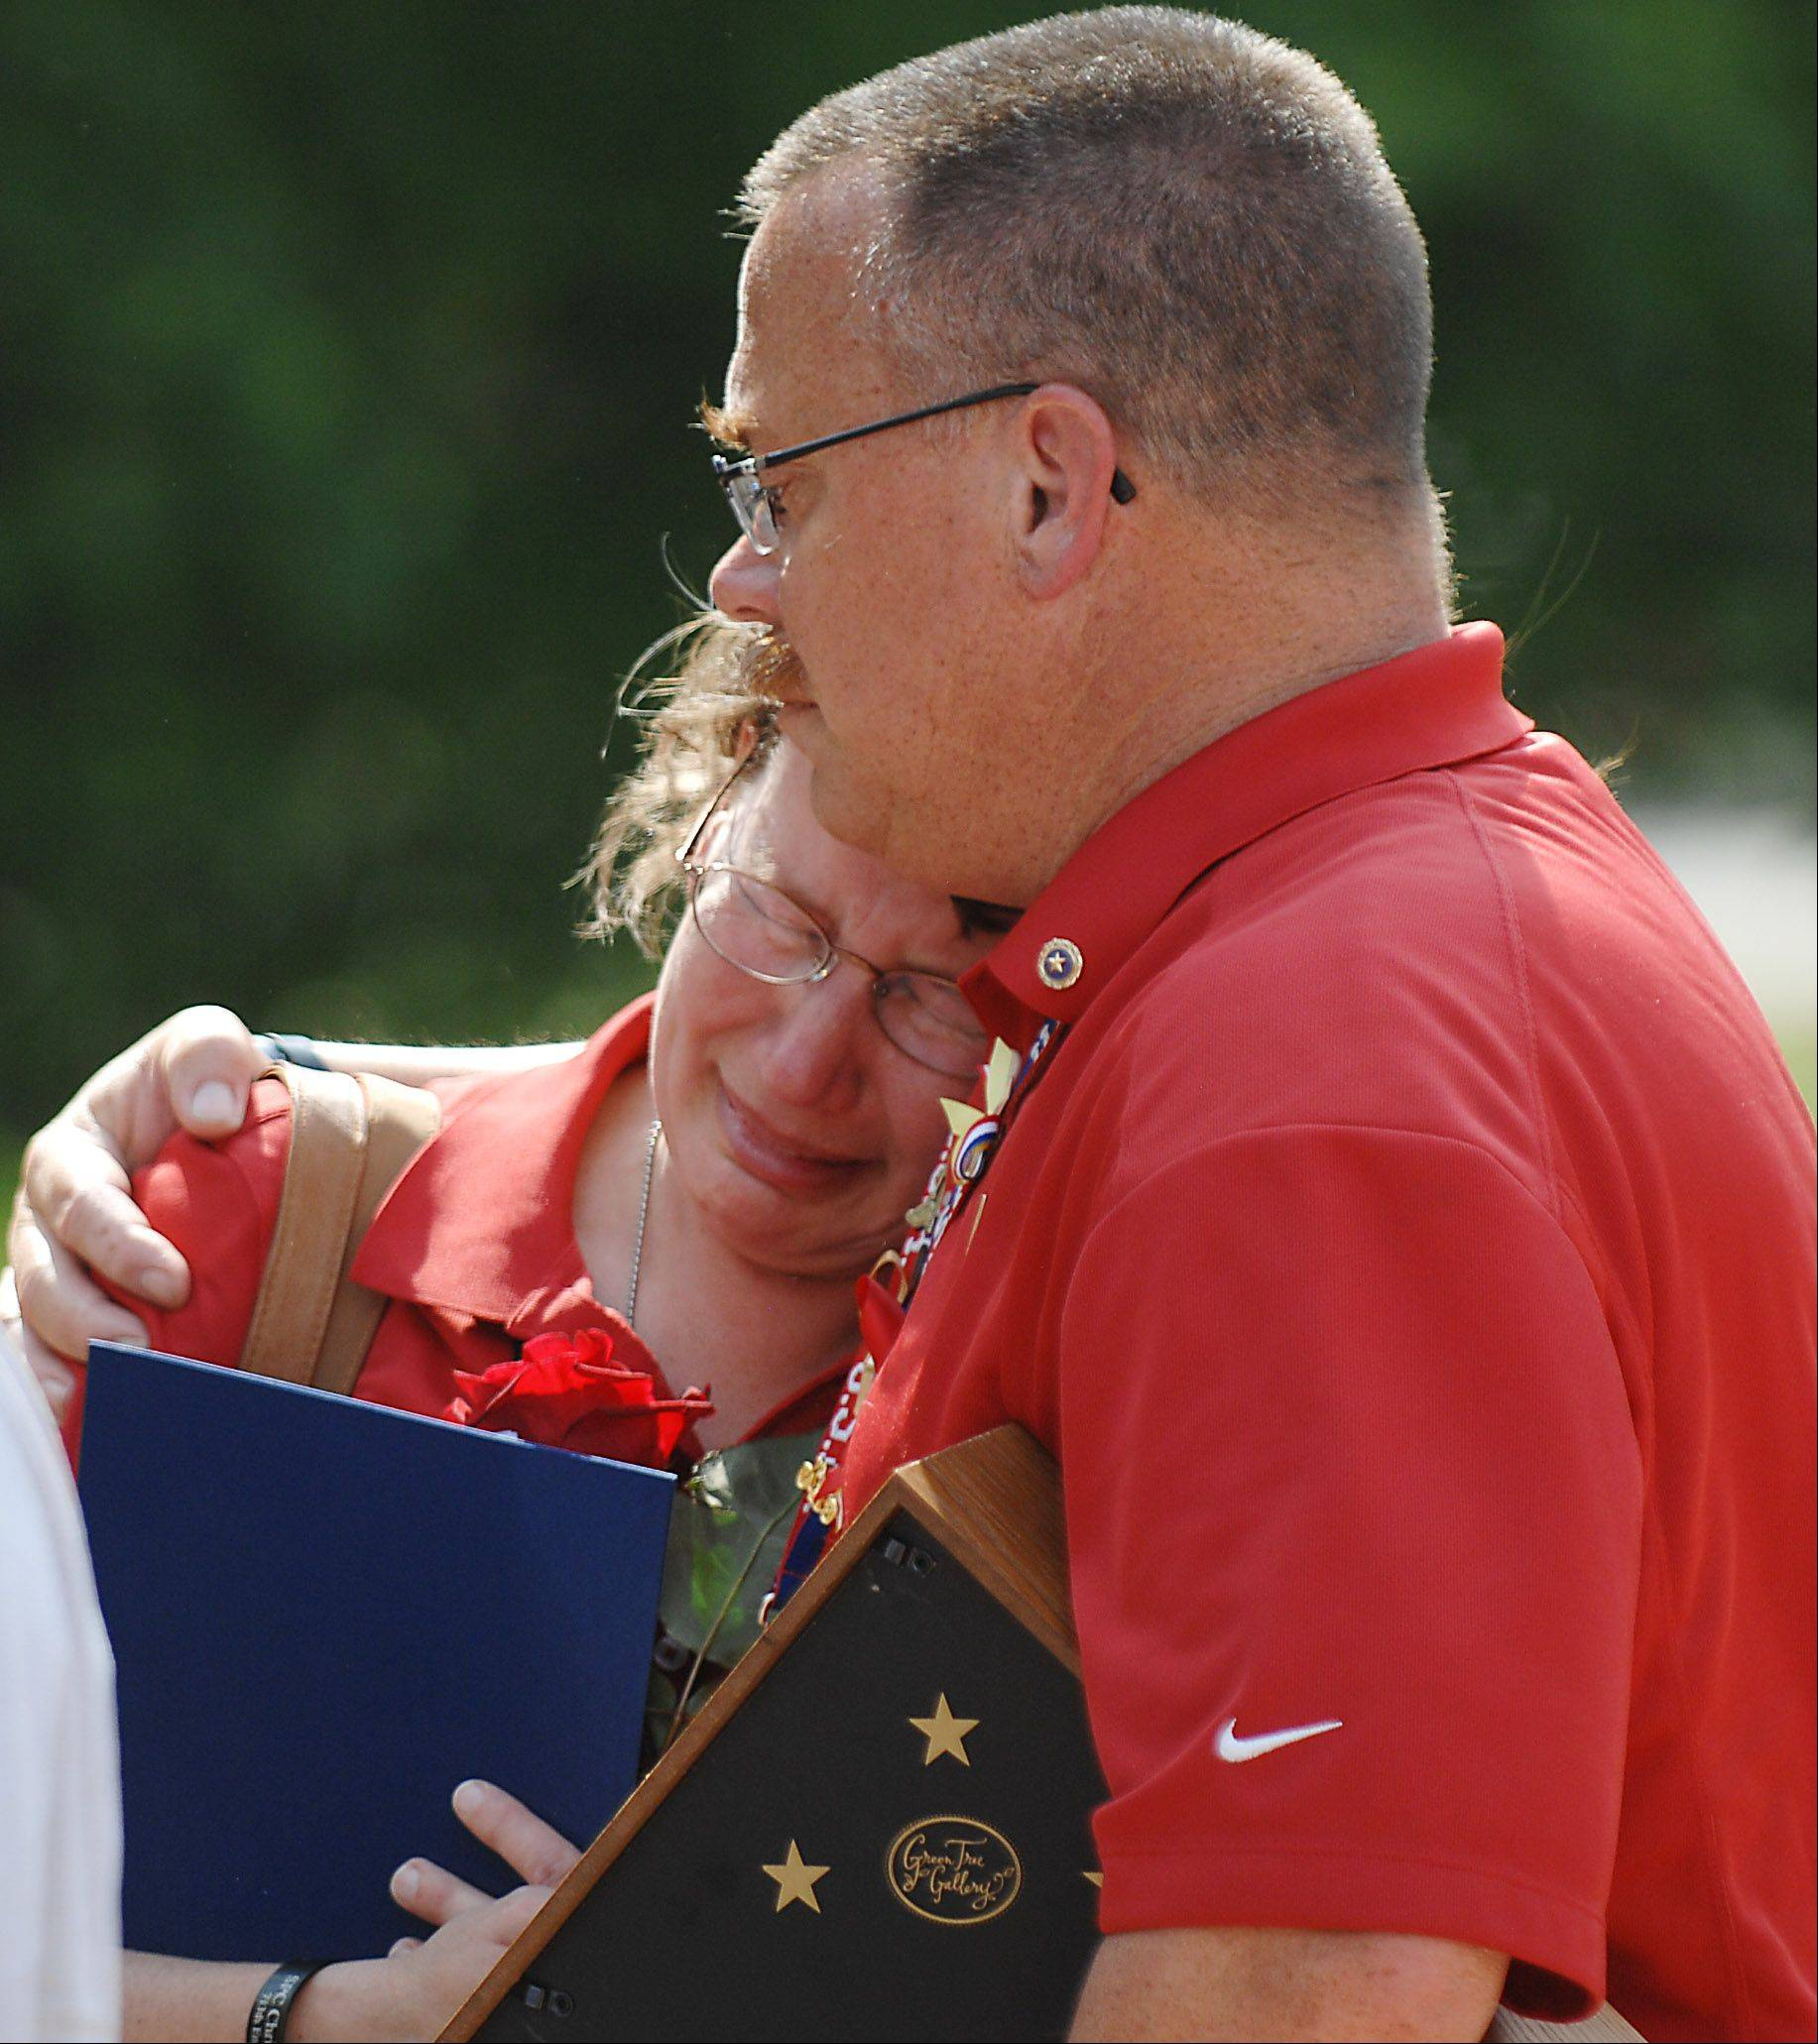 Robert Patterson holds his wife Mary after their late son Christopher was enshrined in the Veterans Memorial Monday at a ceremony sponsored by the Kane County Veterans Assistance Commission at the Government Center in Geneva.